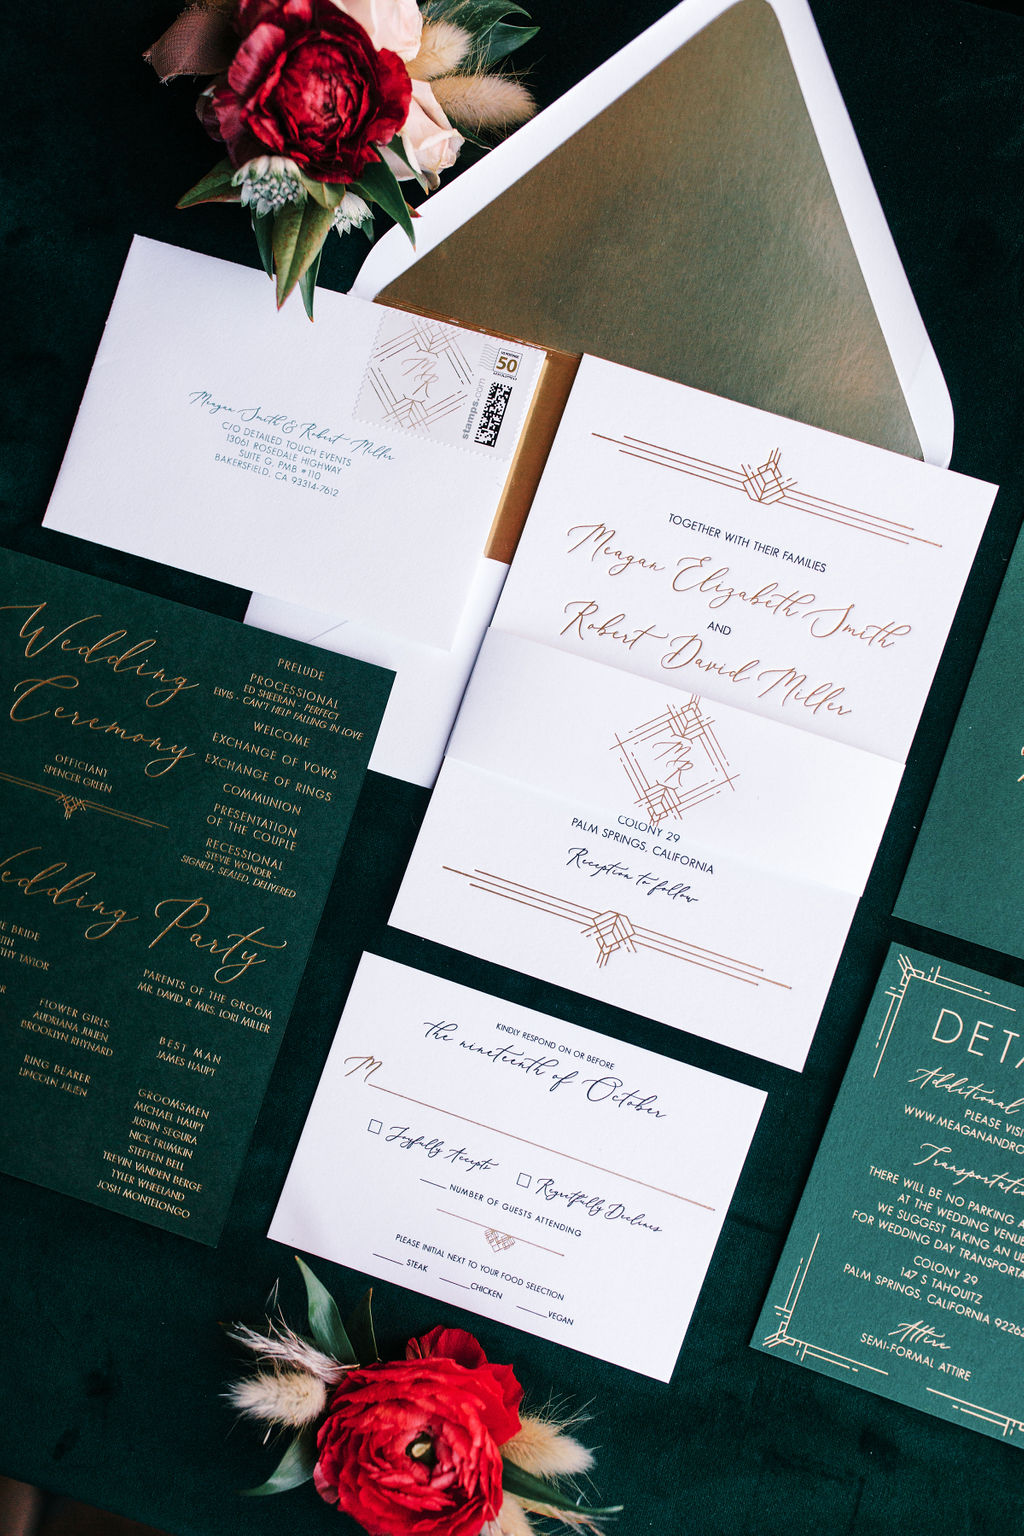 meagan robert wedding invites green and red